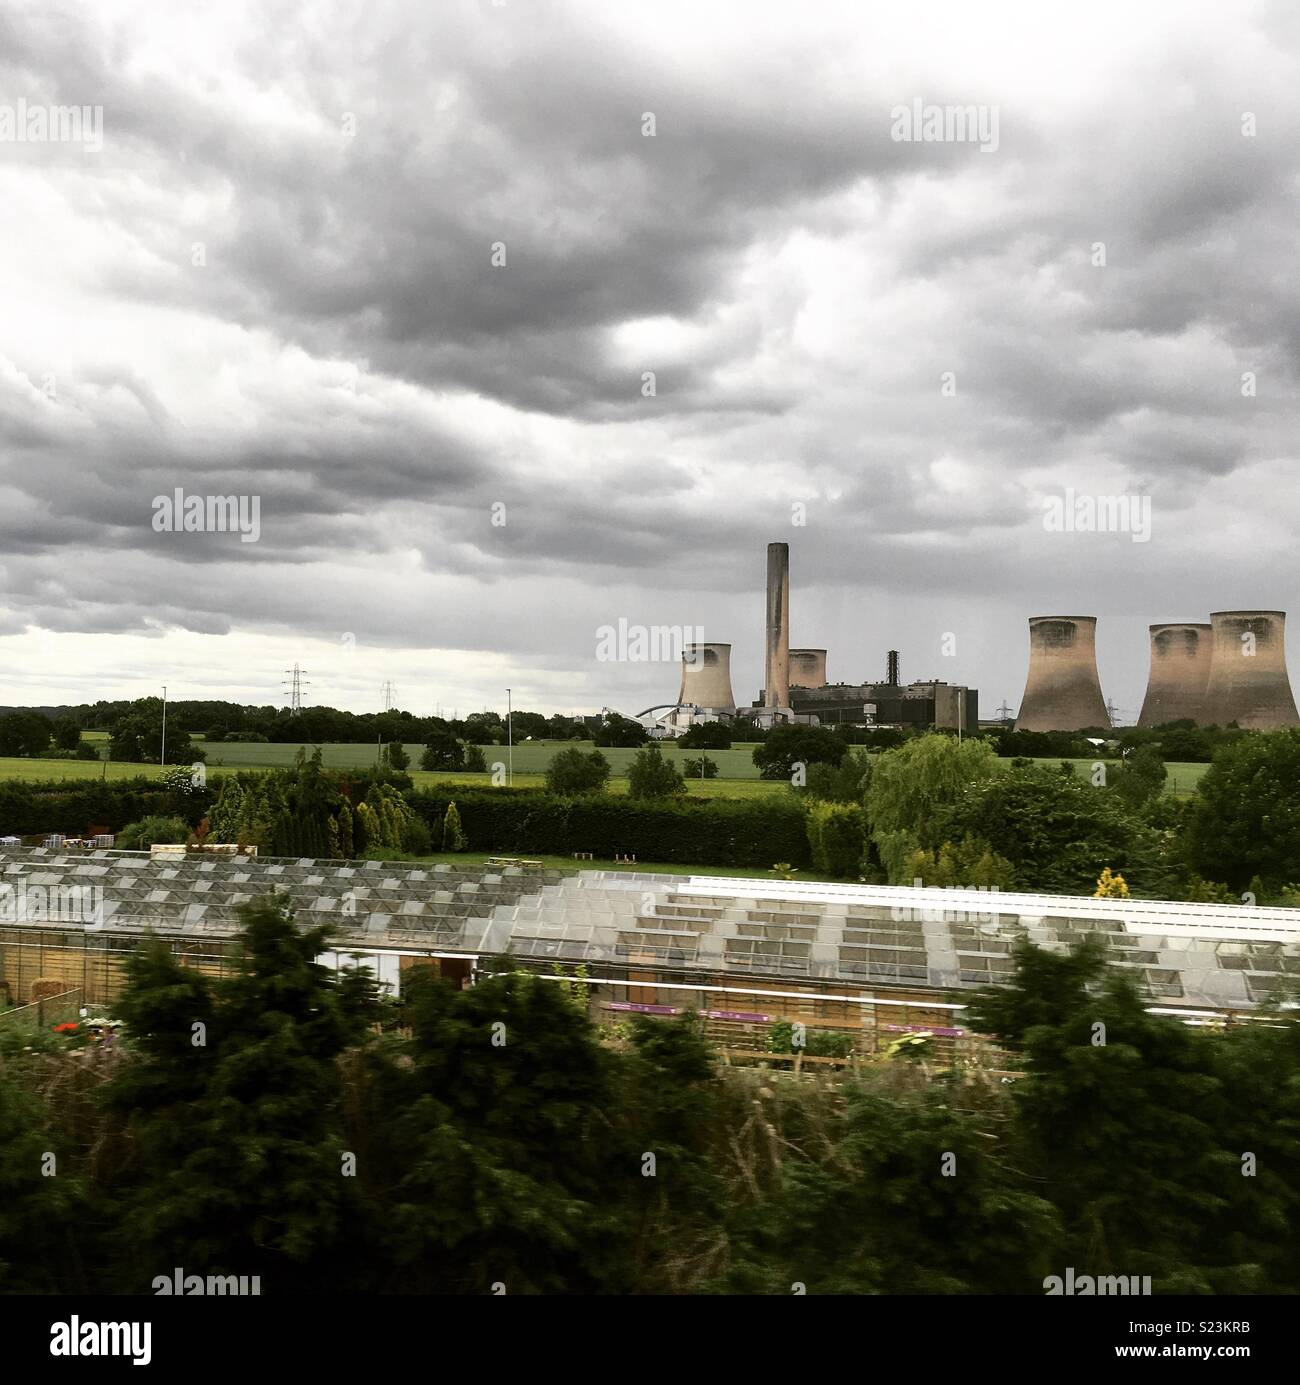 View from train - Stock Image